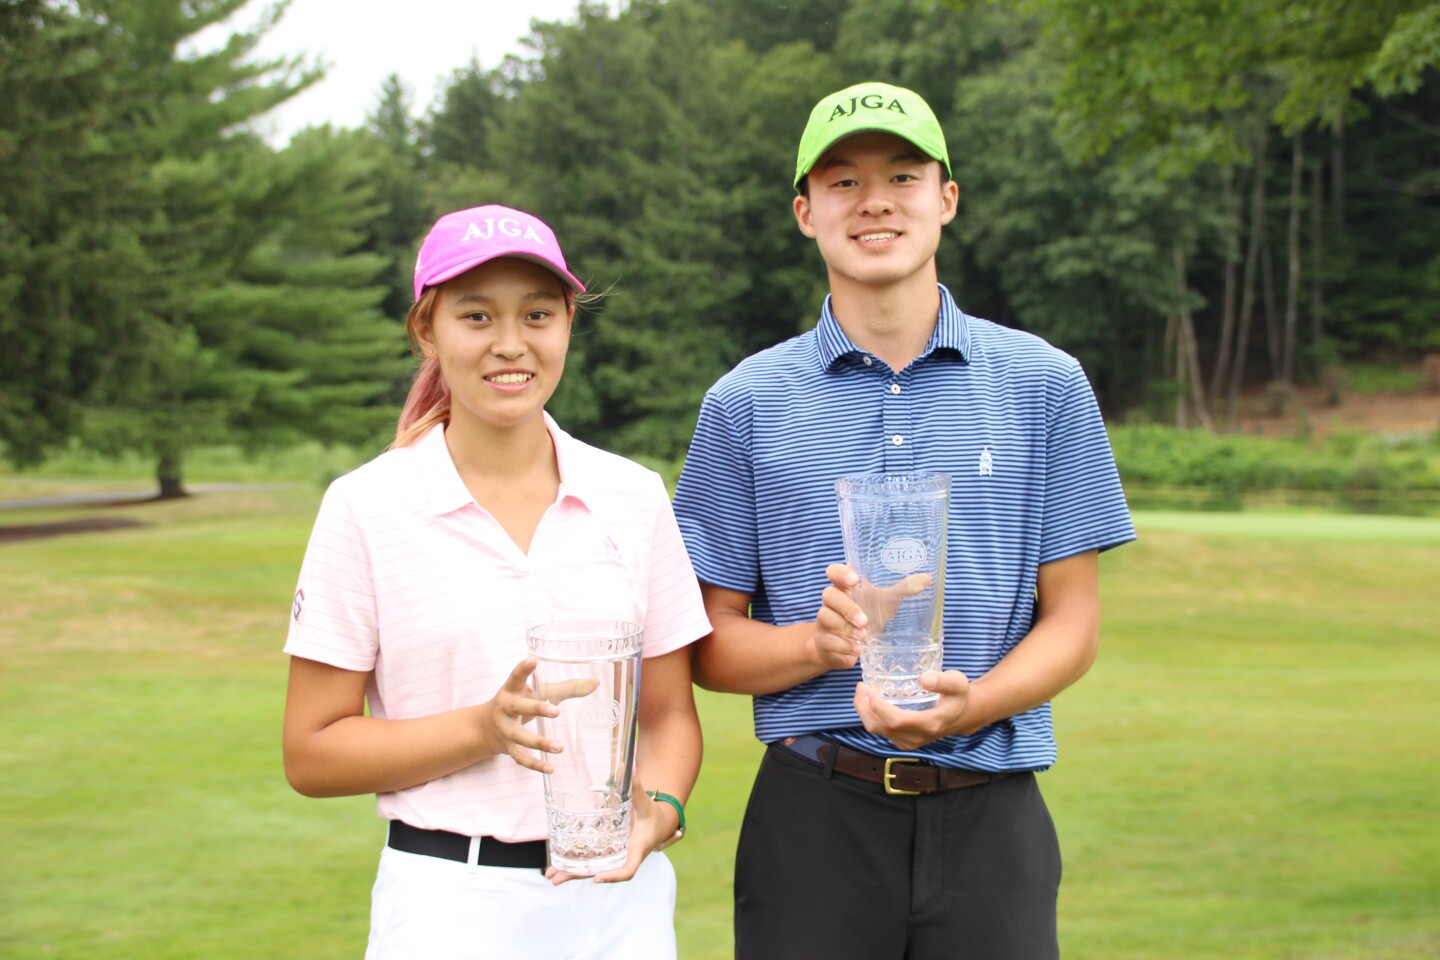 Shang, Xiao Champion Photo without Banner - 2019 - Junior Golf Hub Championship - Website.JPG